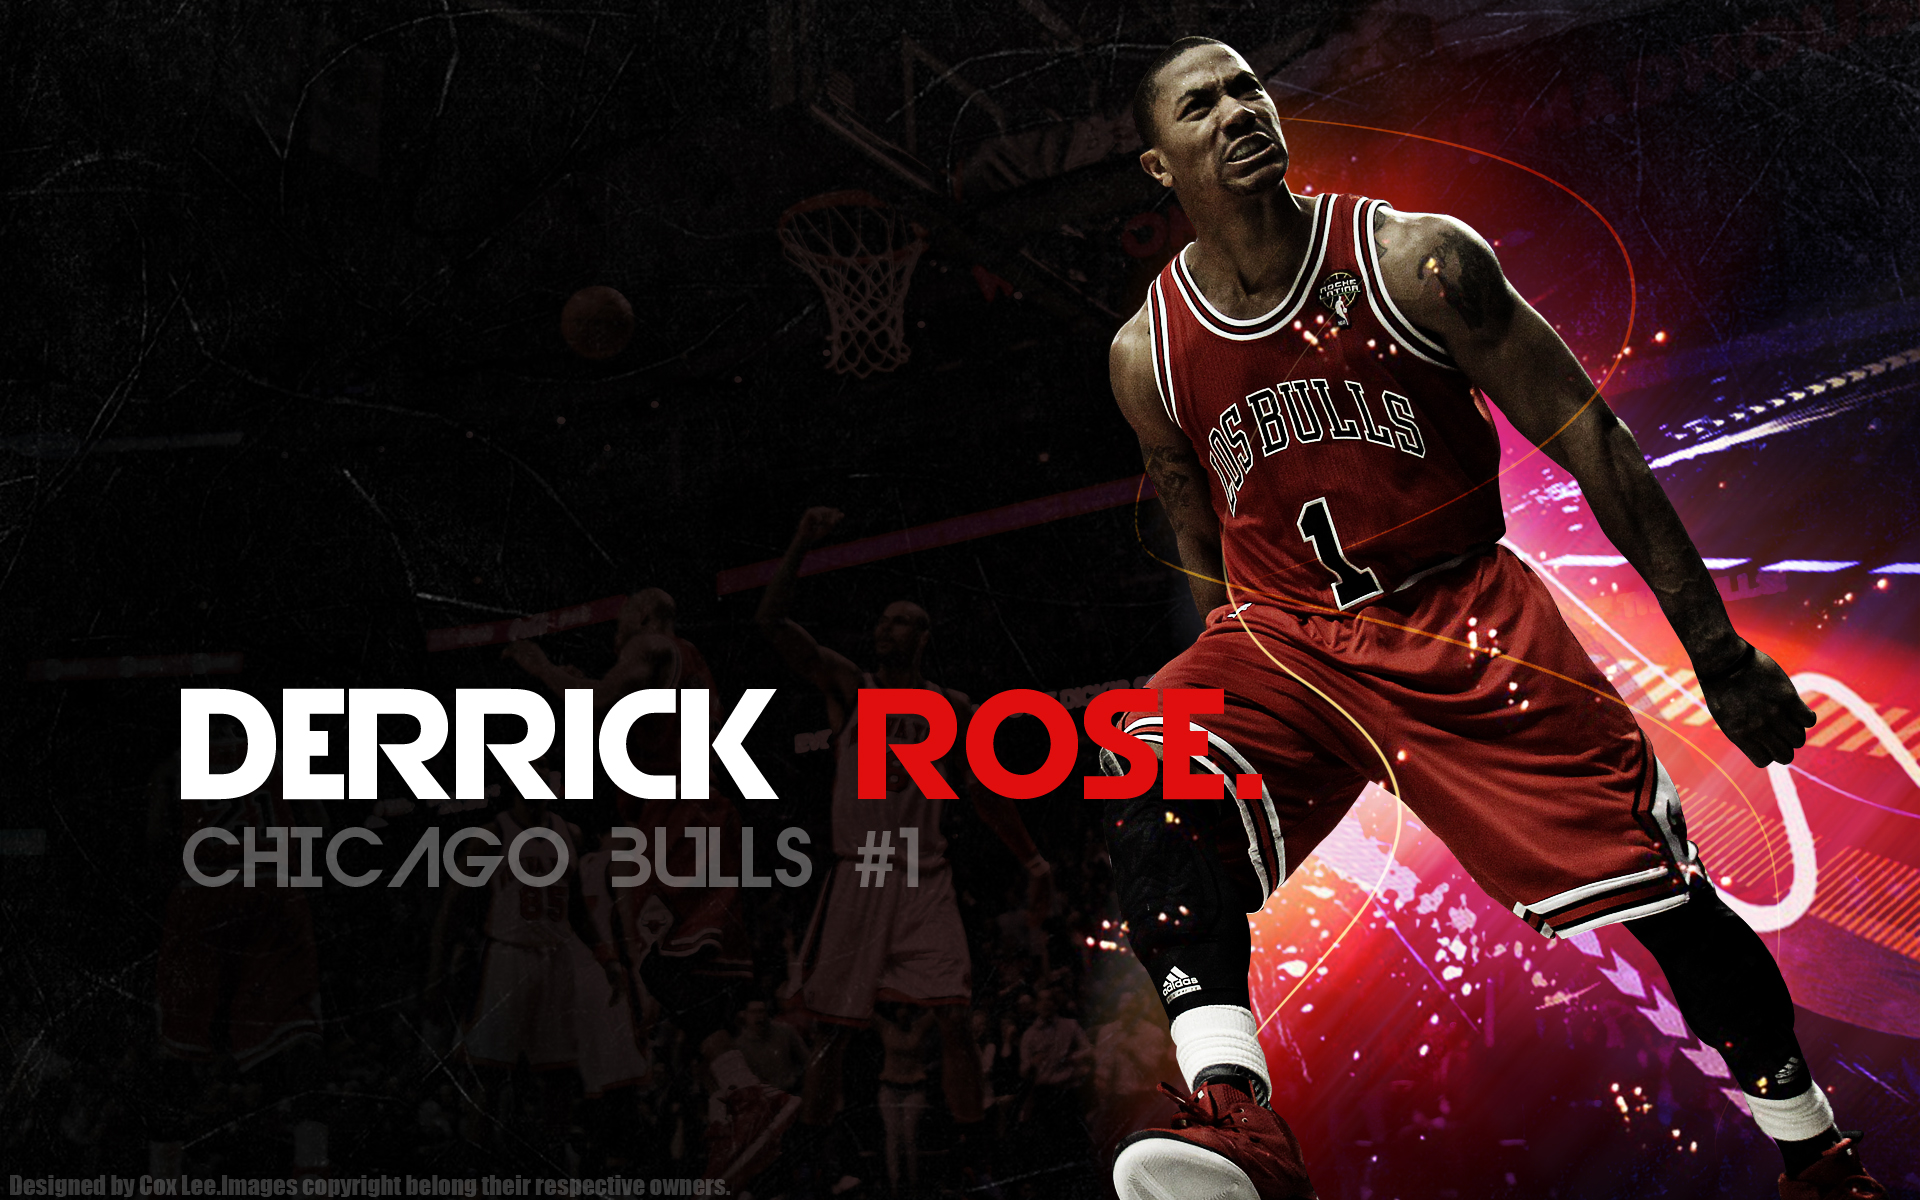 The Ultimate Derrick Rose Wallpaper Details and Download Free